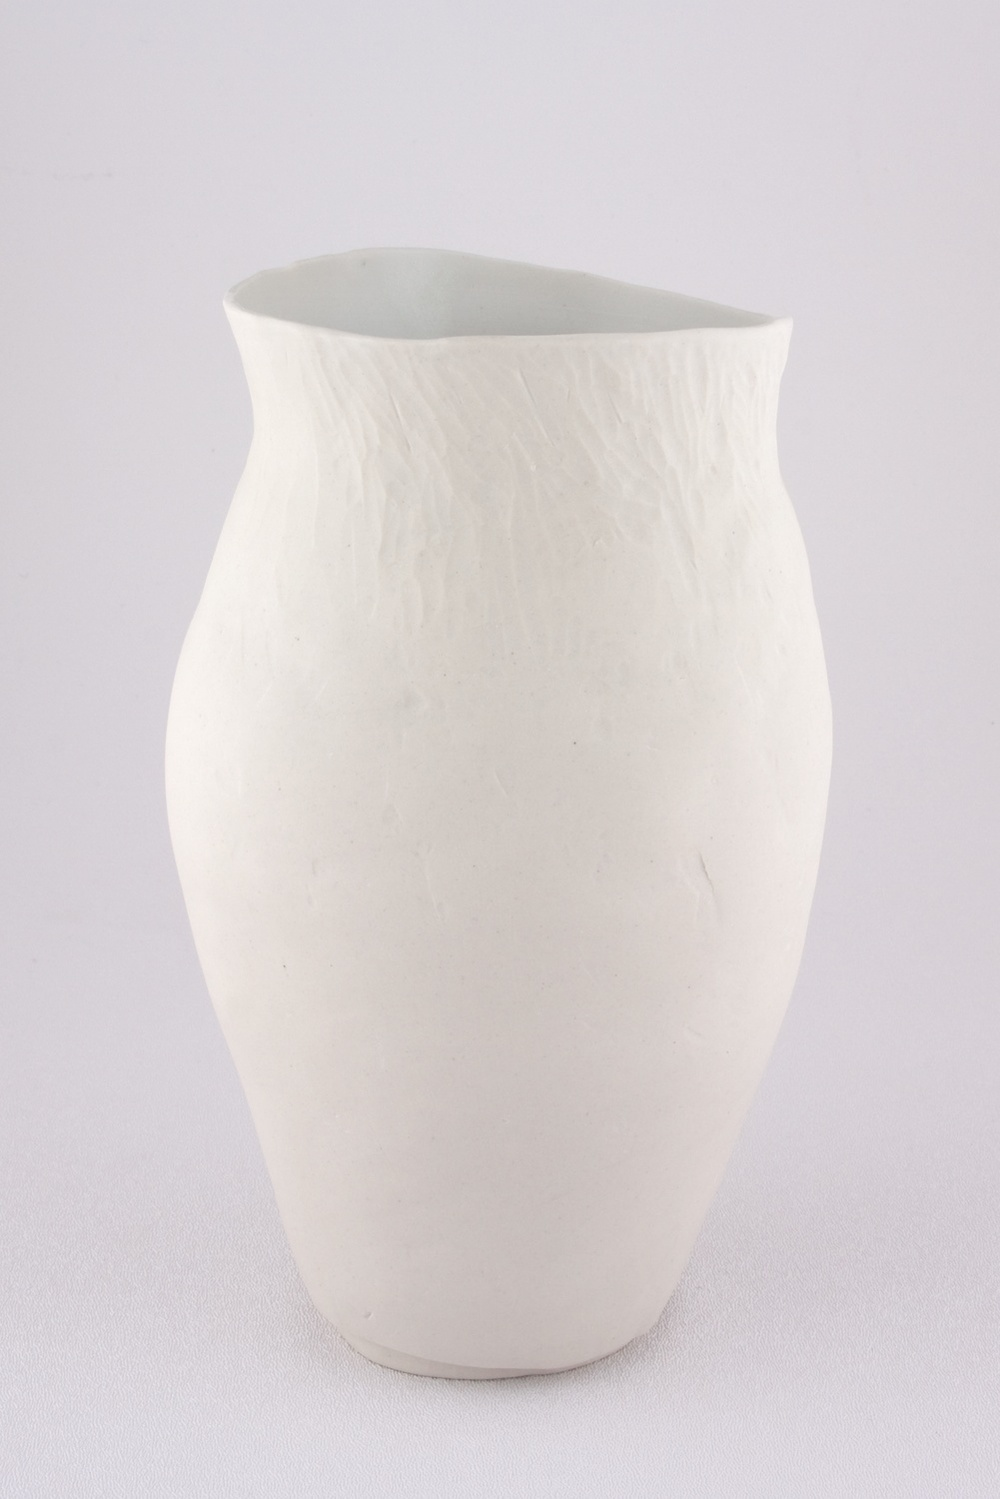 "Shio Kusaka Untitled (secretly good) 2009 Porcelain 8 3/4"" x 5"" x 5"" SK044"